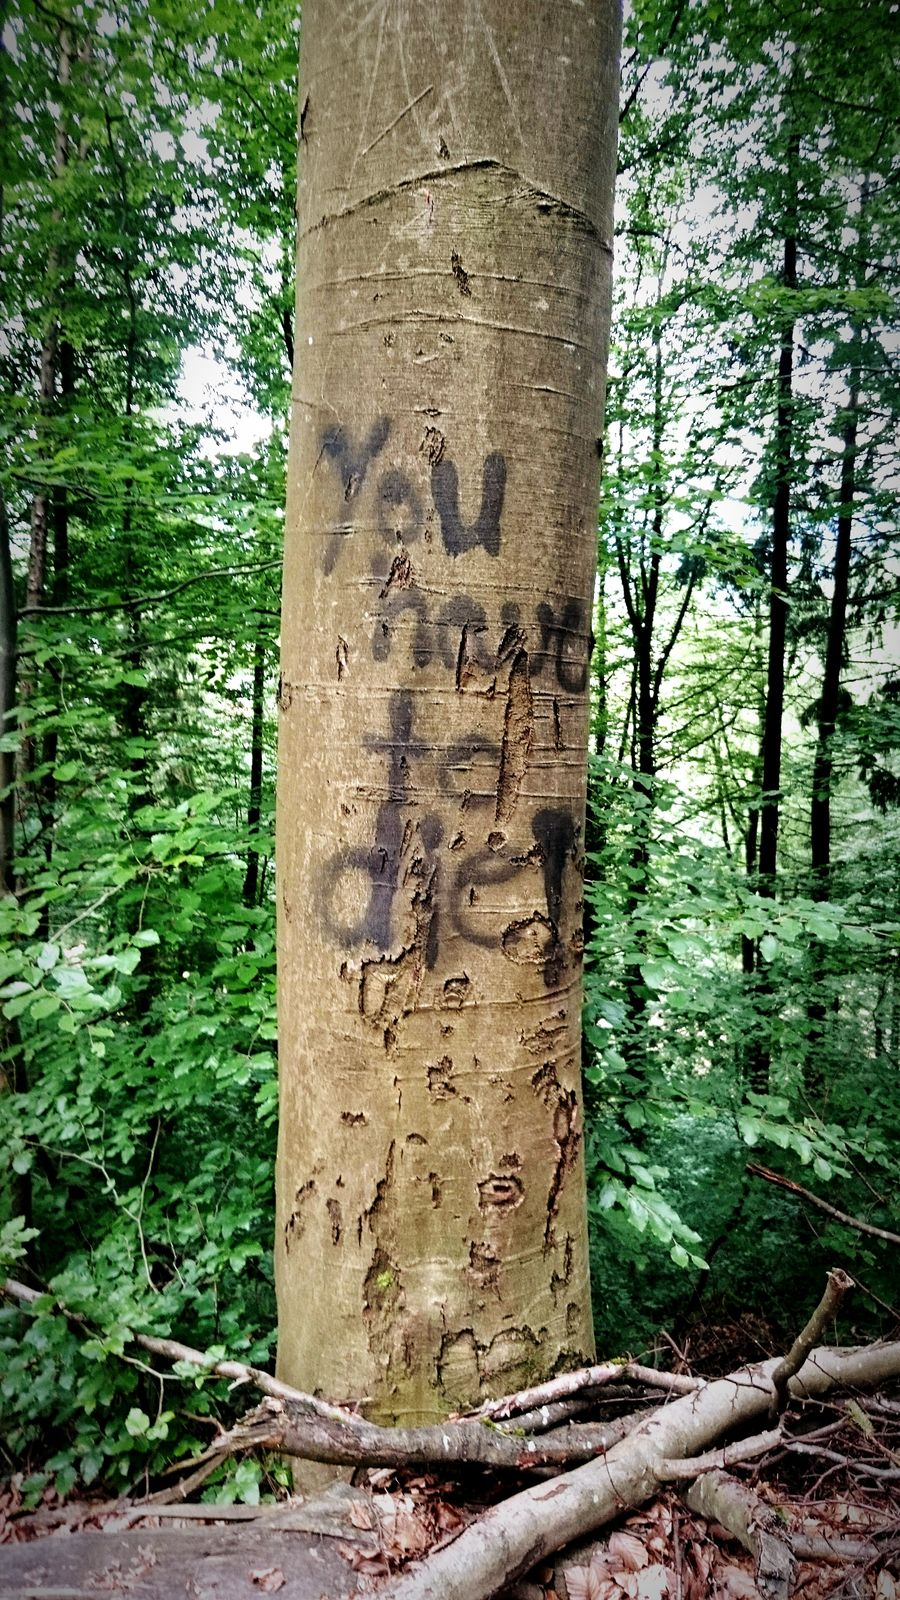 Tree Nature Forest No People Growth Green Color Outdoors Day Close-up Tree Trunk Umweltschutz Waldsterben Die You Have Green Eco Ecology